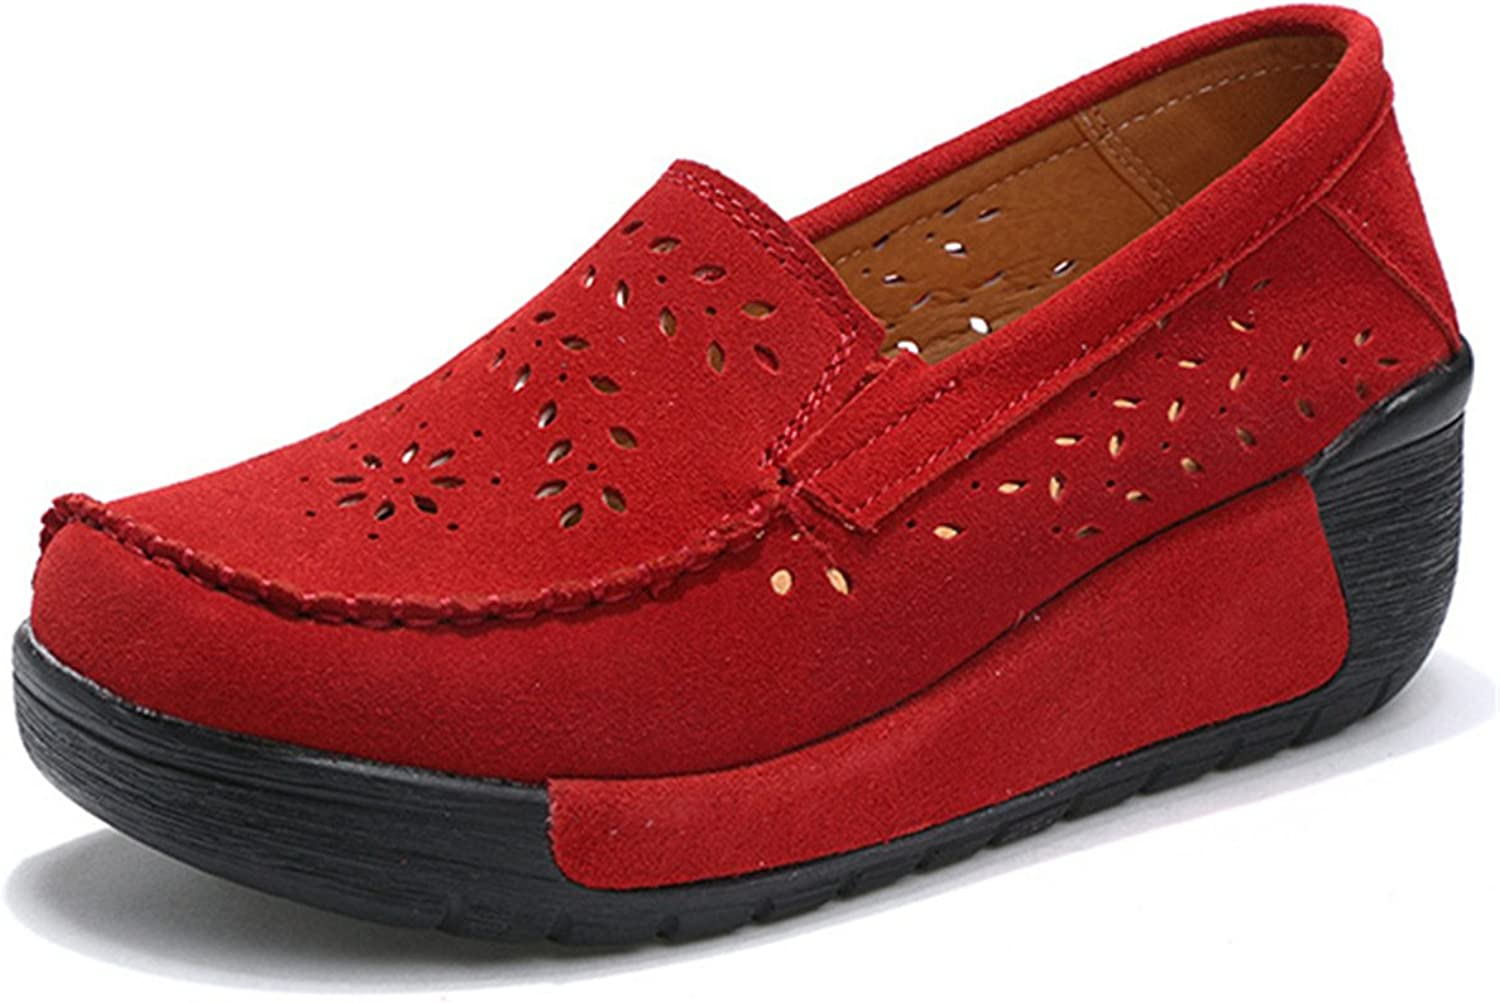 Gracosy Women's Platform Leather shoes, Slip On Loafers Casual Cow Leather Wide Low Top Wedge Comfort shoes